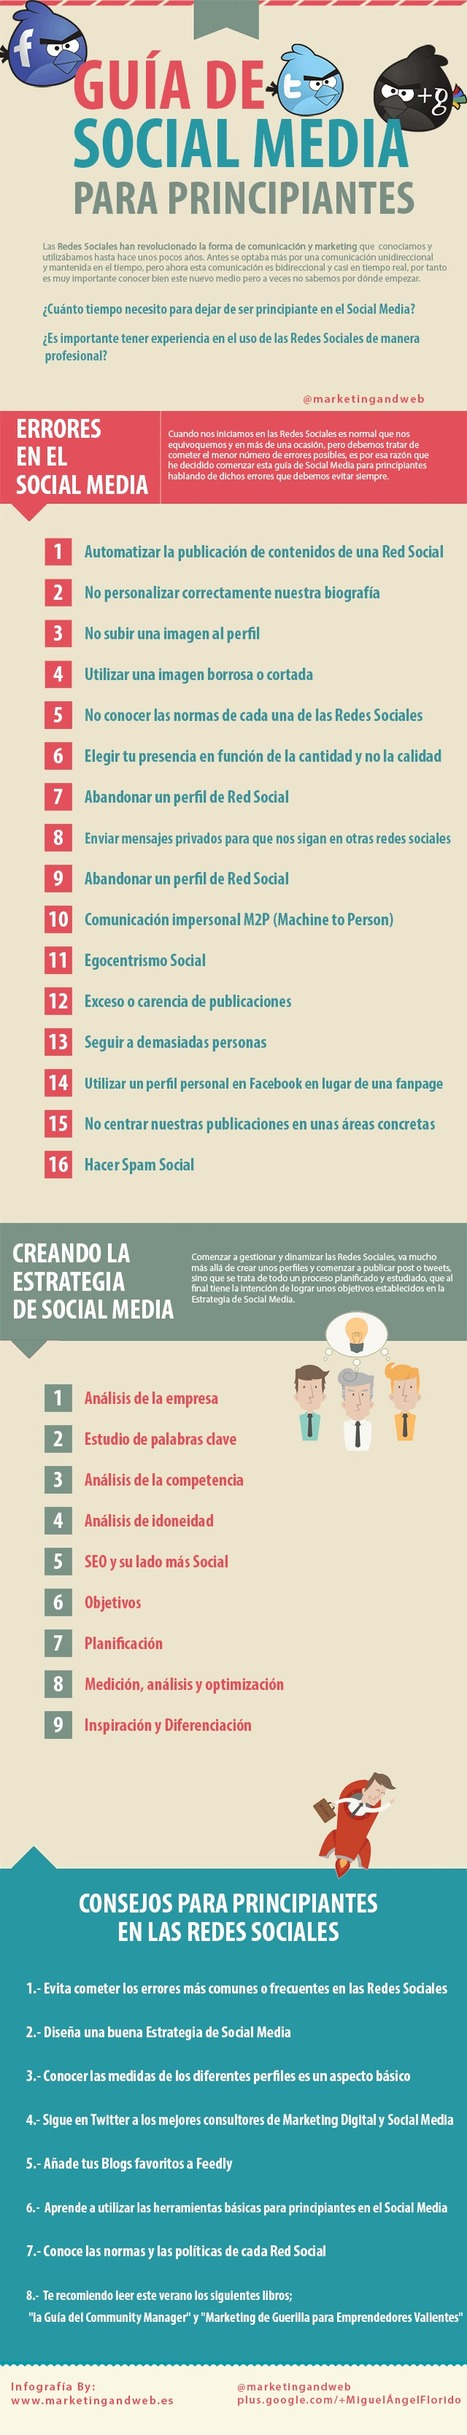 Guía de Social Media para principiantes | MarKetingneando | Content Curator | Scoop.it